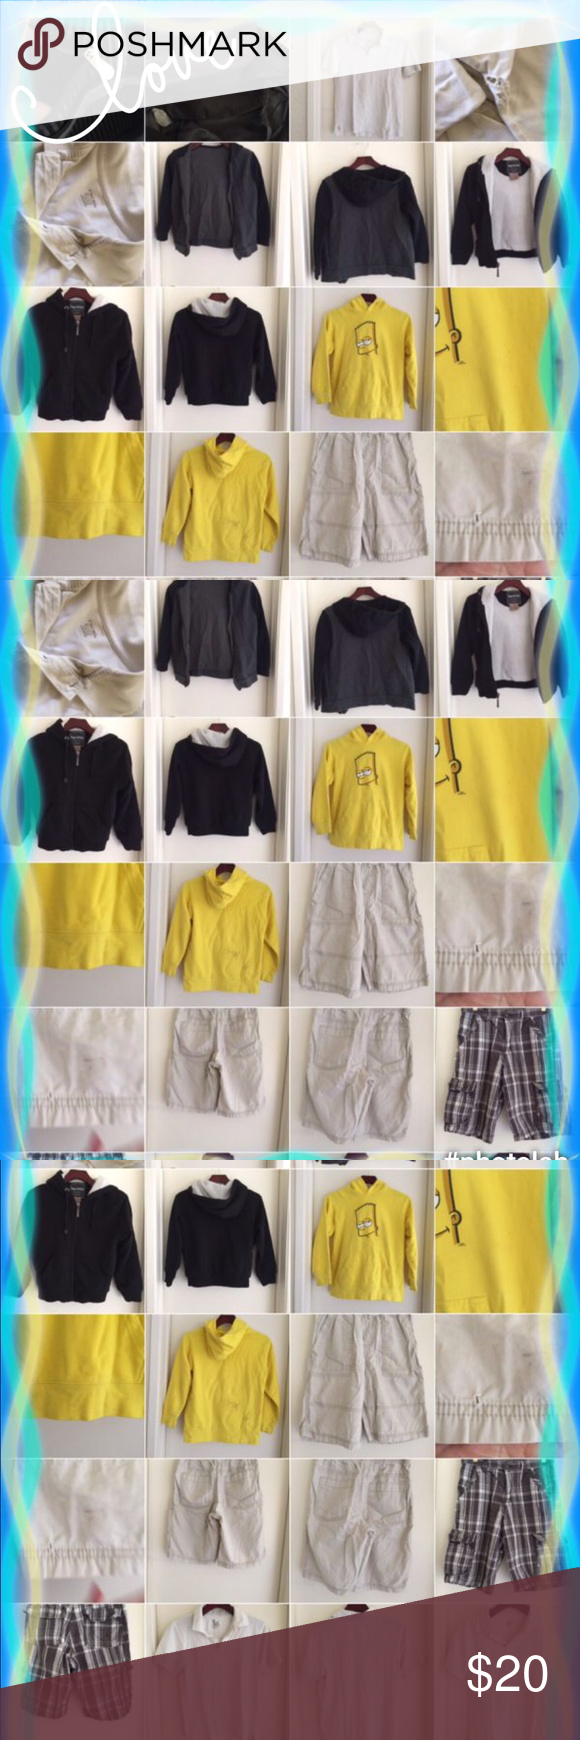 2 Shorts, 4 t-shirts, 3 jackets  for $20.00 Shorts, polo shirts, jackets 9 pc for &20.00 Shorts size 12-14  polo shirts 12-14  Jackets size 10 the other is don't have tag but I thing is 10 Shirts & Tops Tees - Short Sleeve